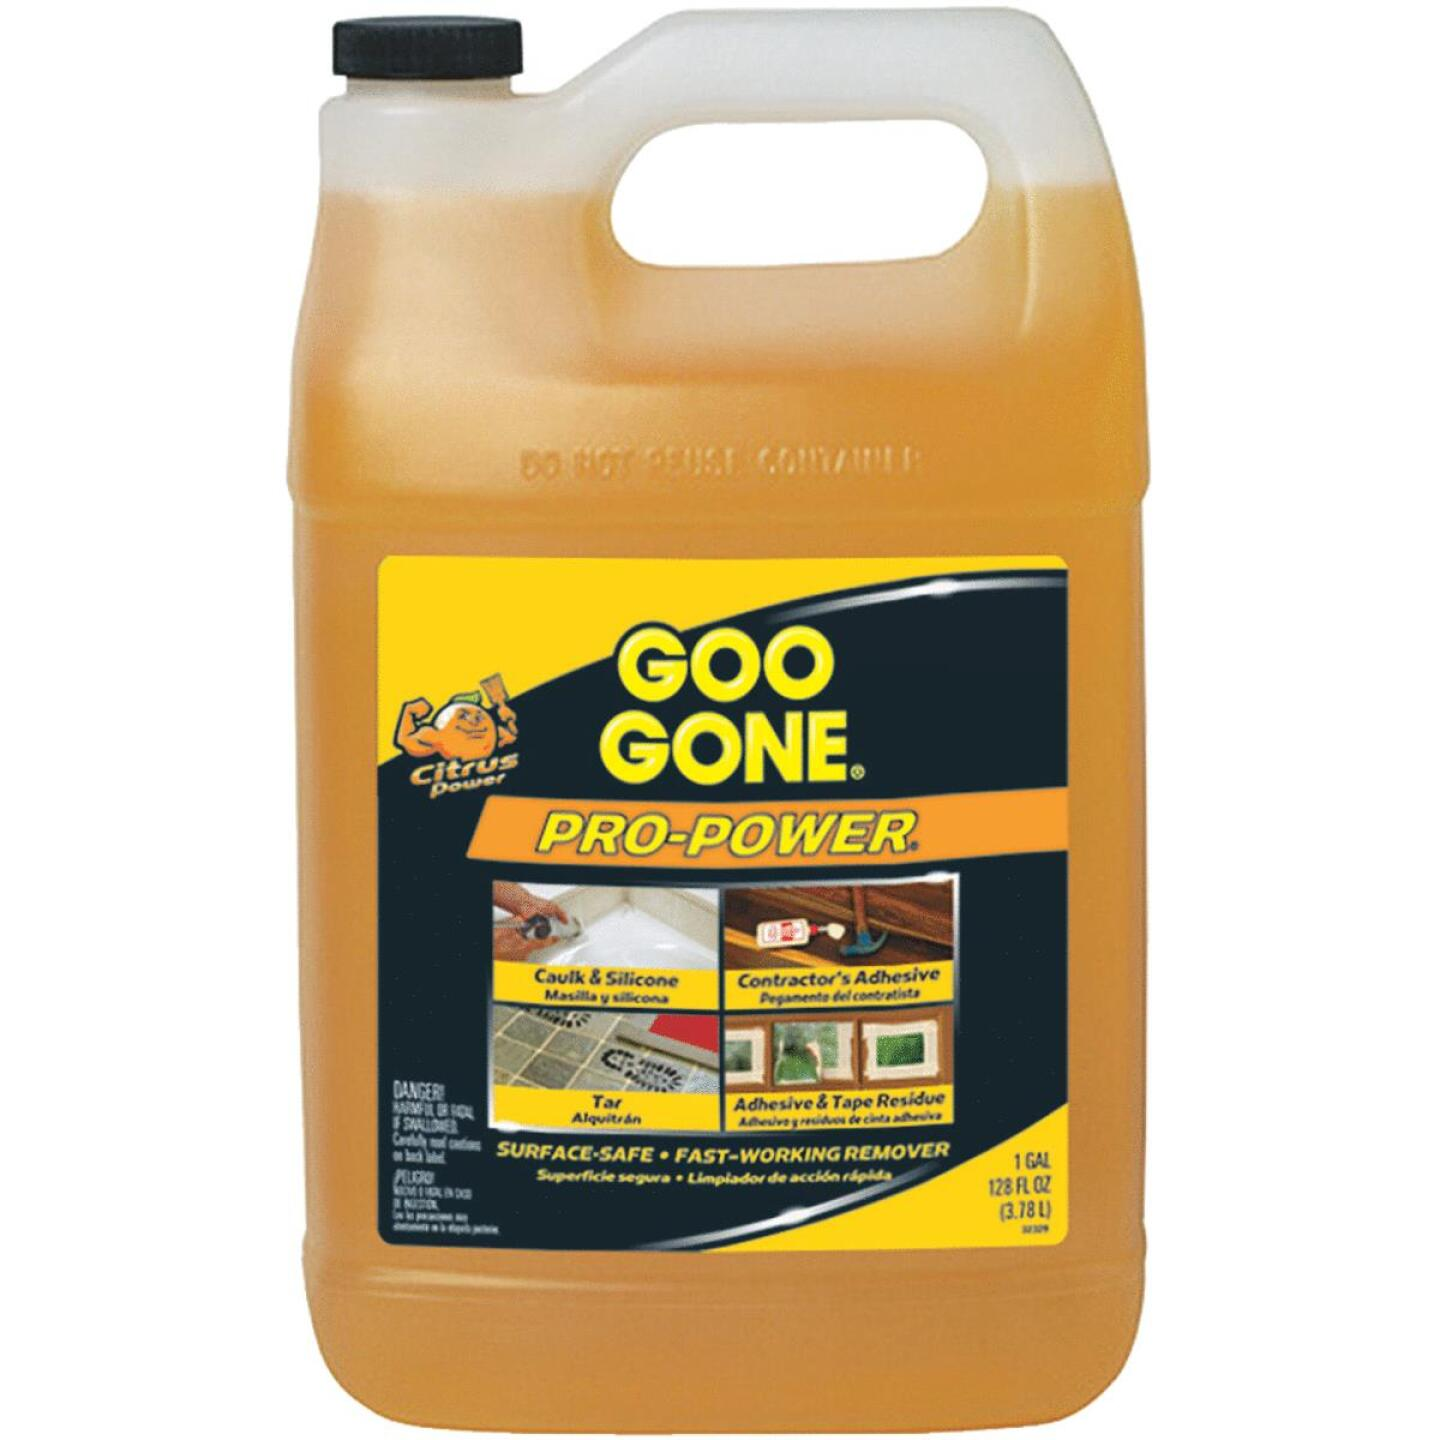 Goo Gone 1 Gal. Pro-Power Adhesive Remover Image 177